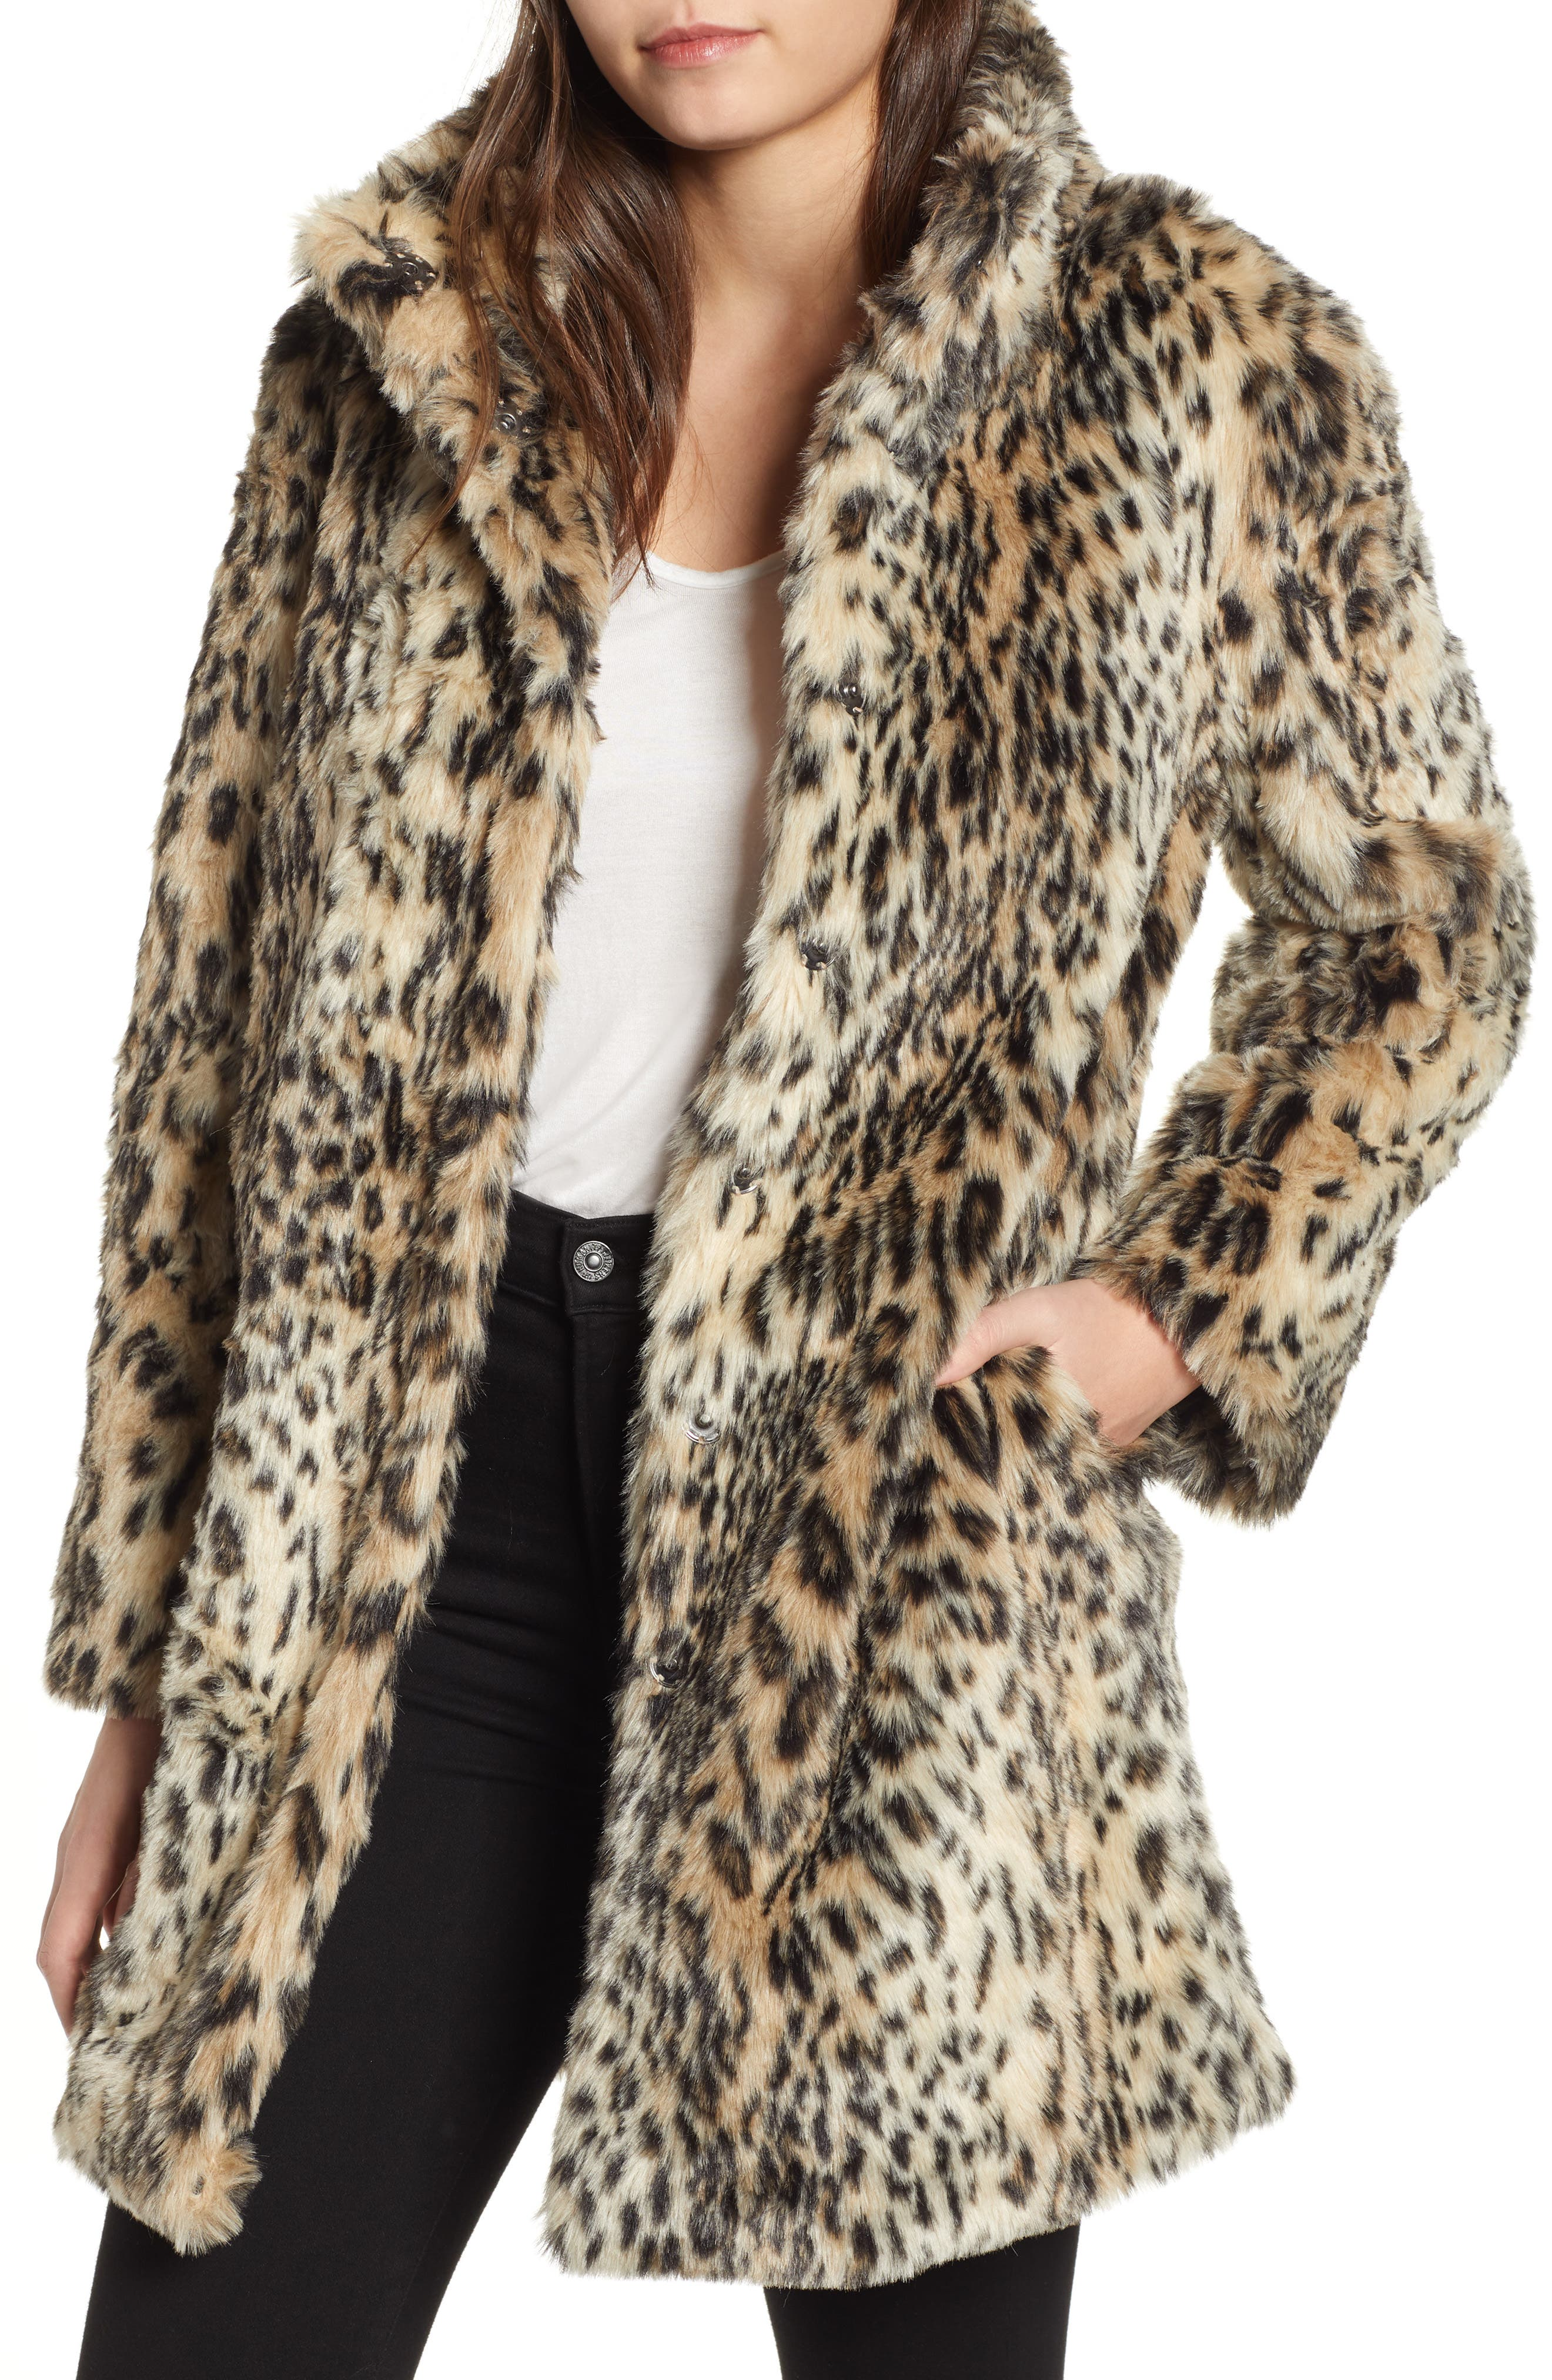 CUPCAKES AND CASHMERE Leopard Faux Fur Coat, Main, color, 009